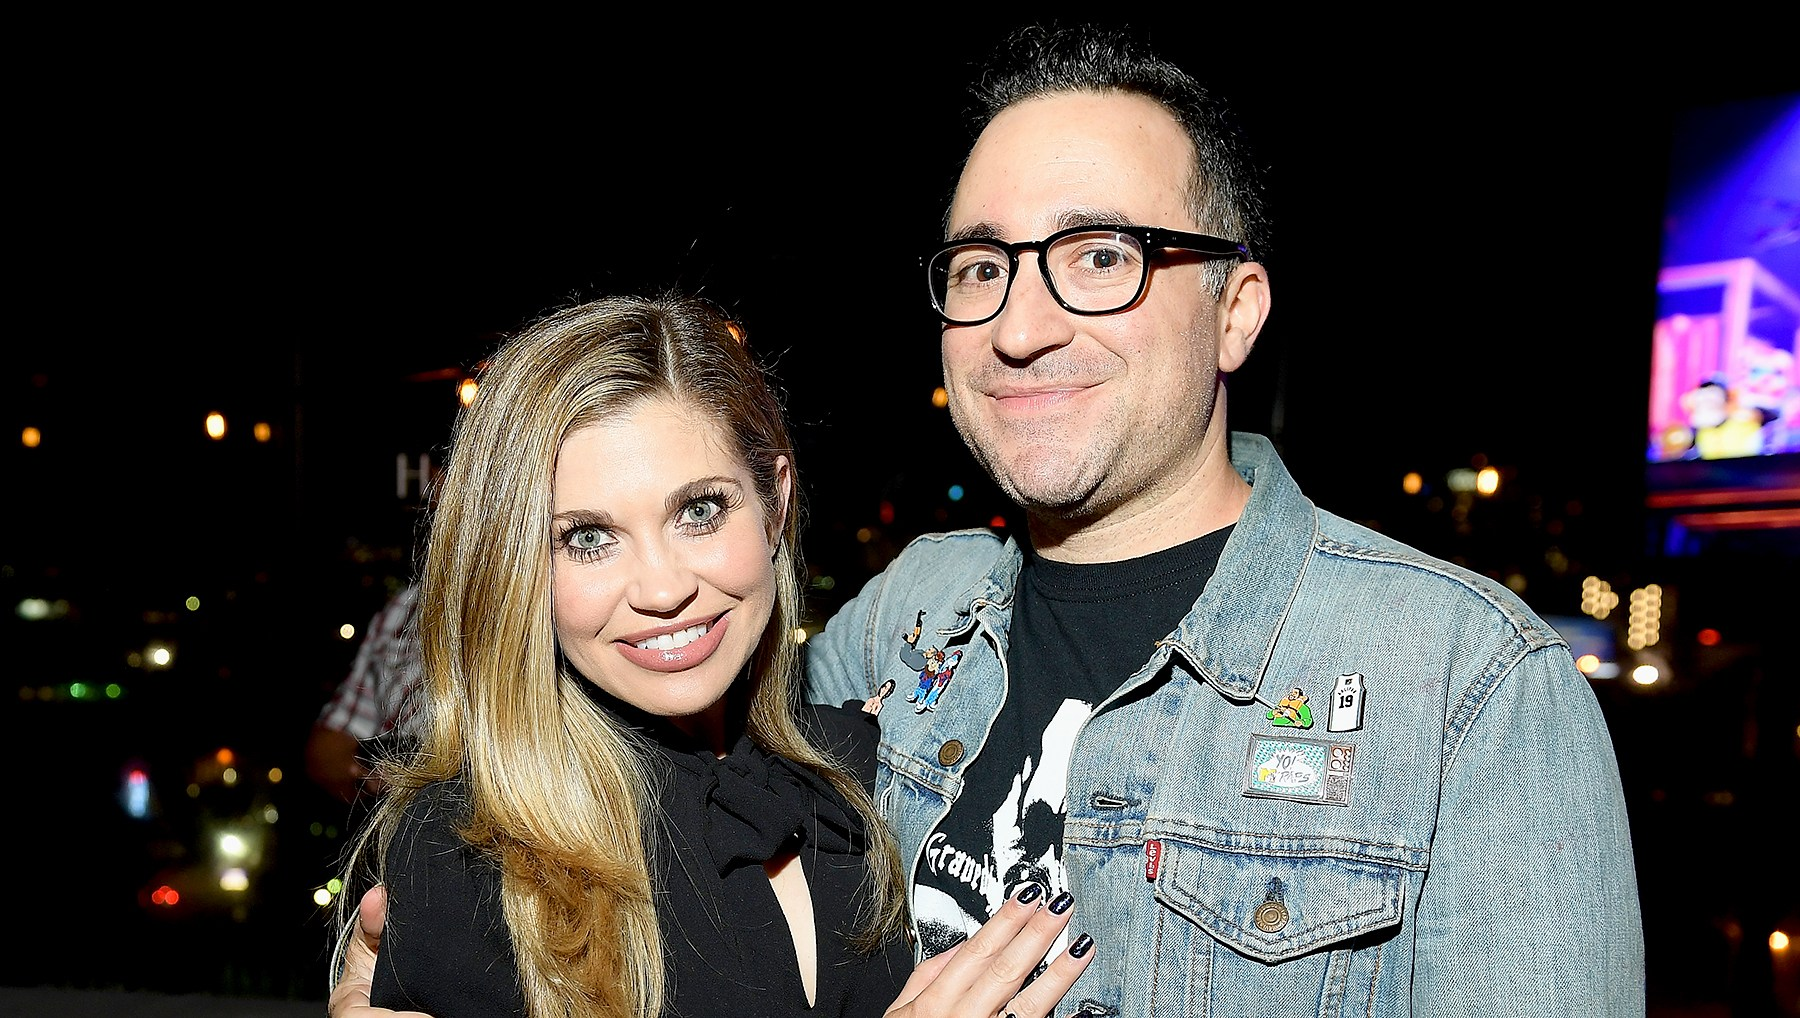 Danielle-Fishel-engaged